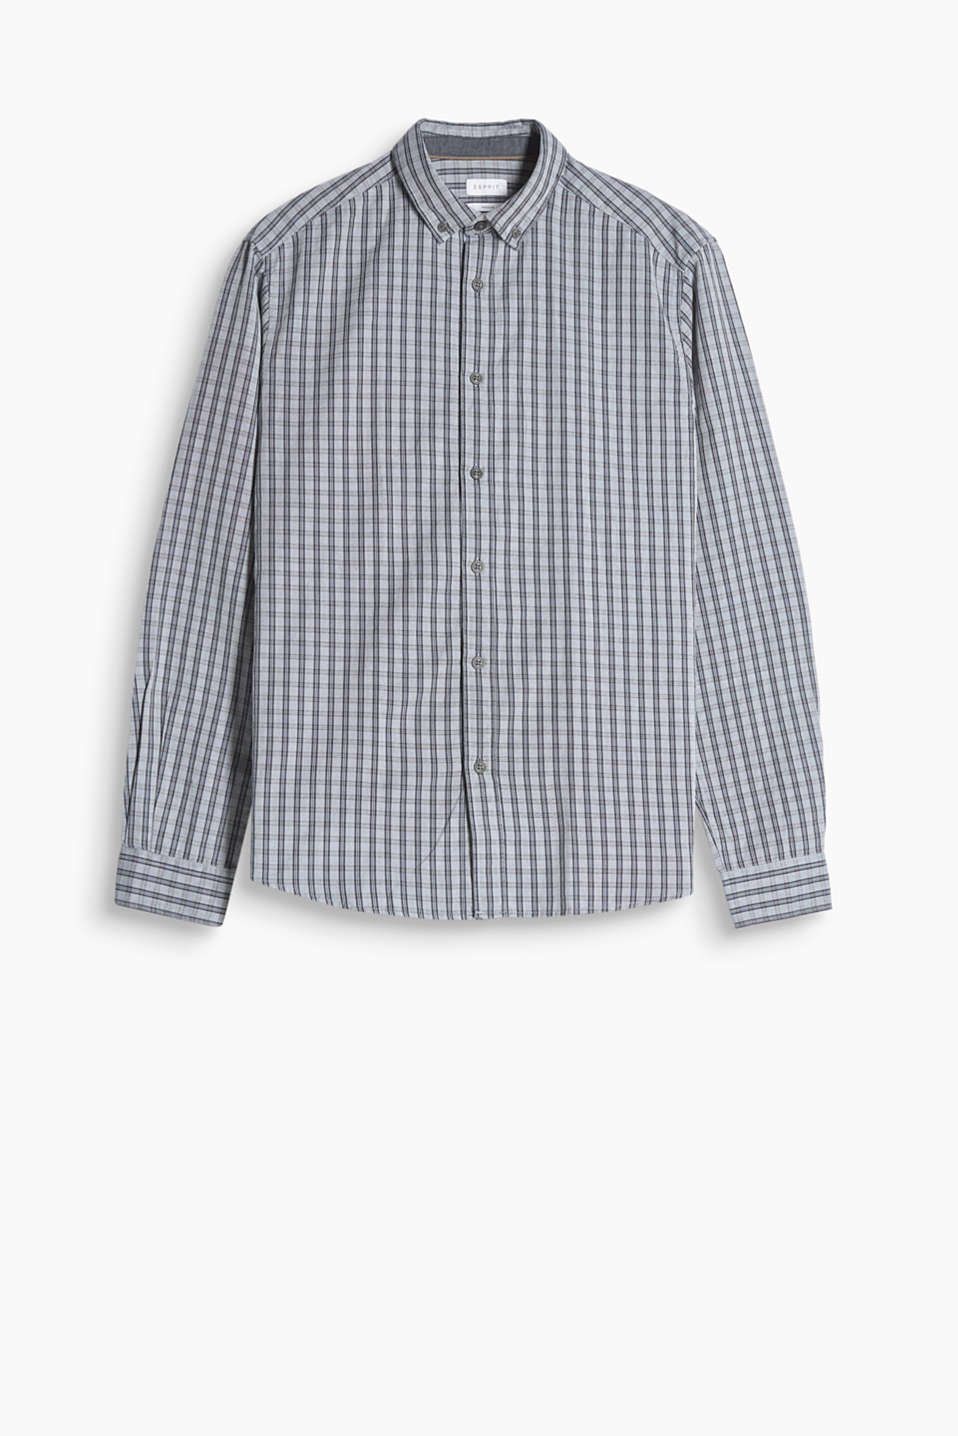 Yarn-dyed check shirt with a classic button-down collar, 100% cotton